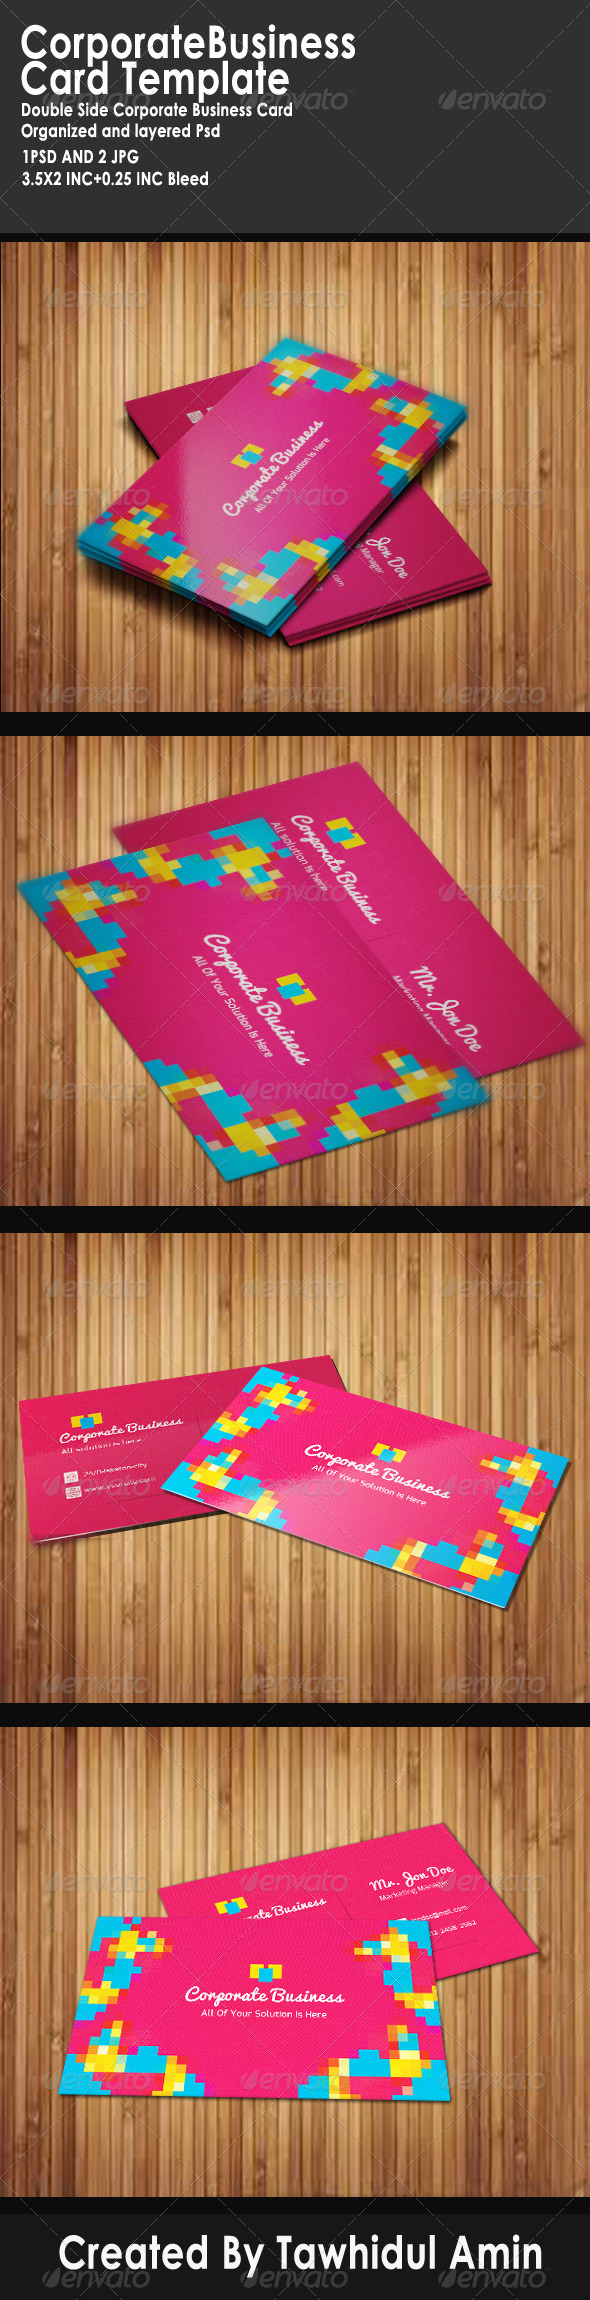 GraphicRiver Corporate Business Card Template 1 4719895